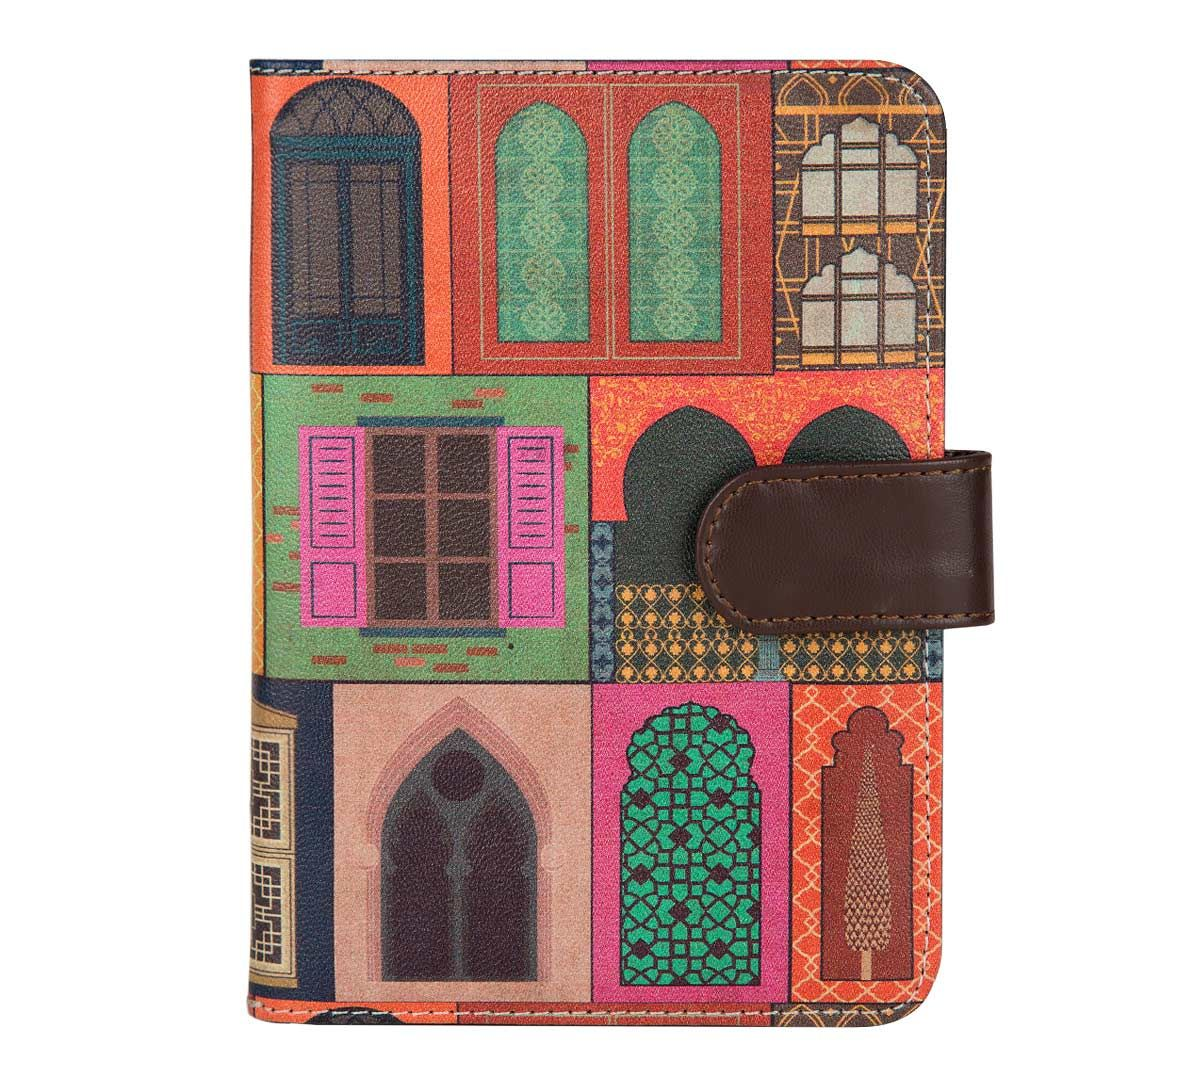 India Circus Mughal Doors Reiteration Passport Cover